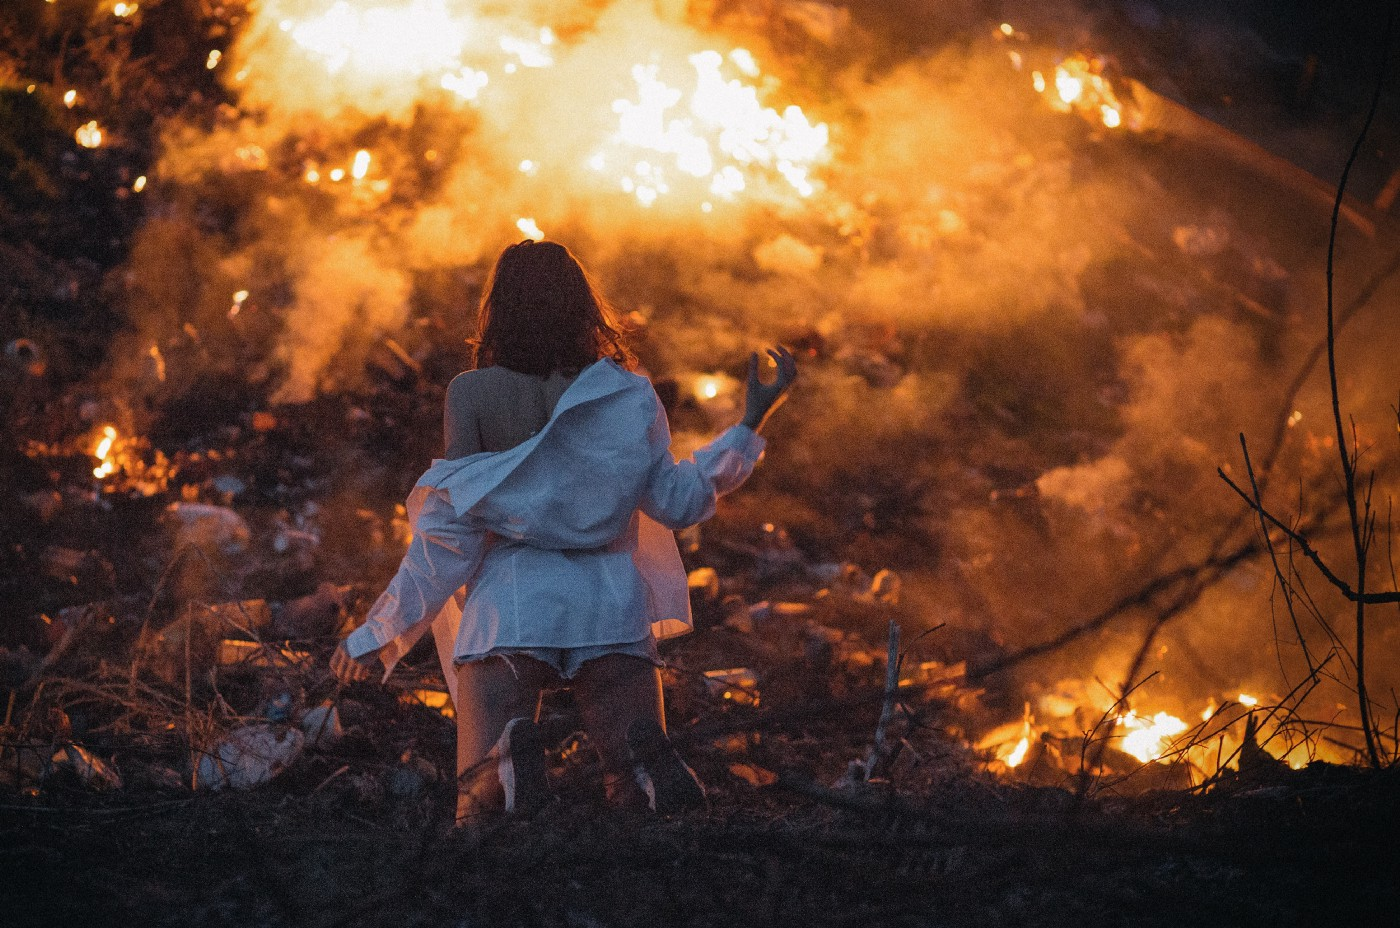 Woman kneeling in front of an apocalyptic fire scene.